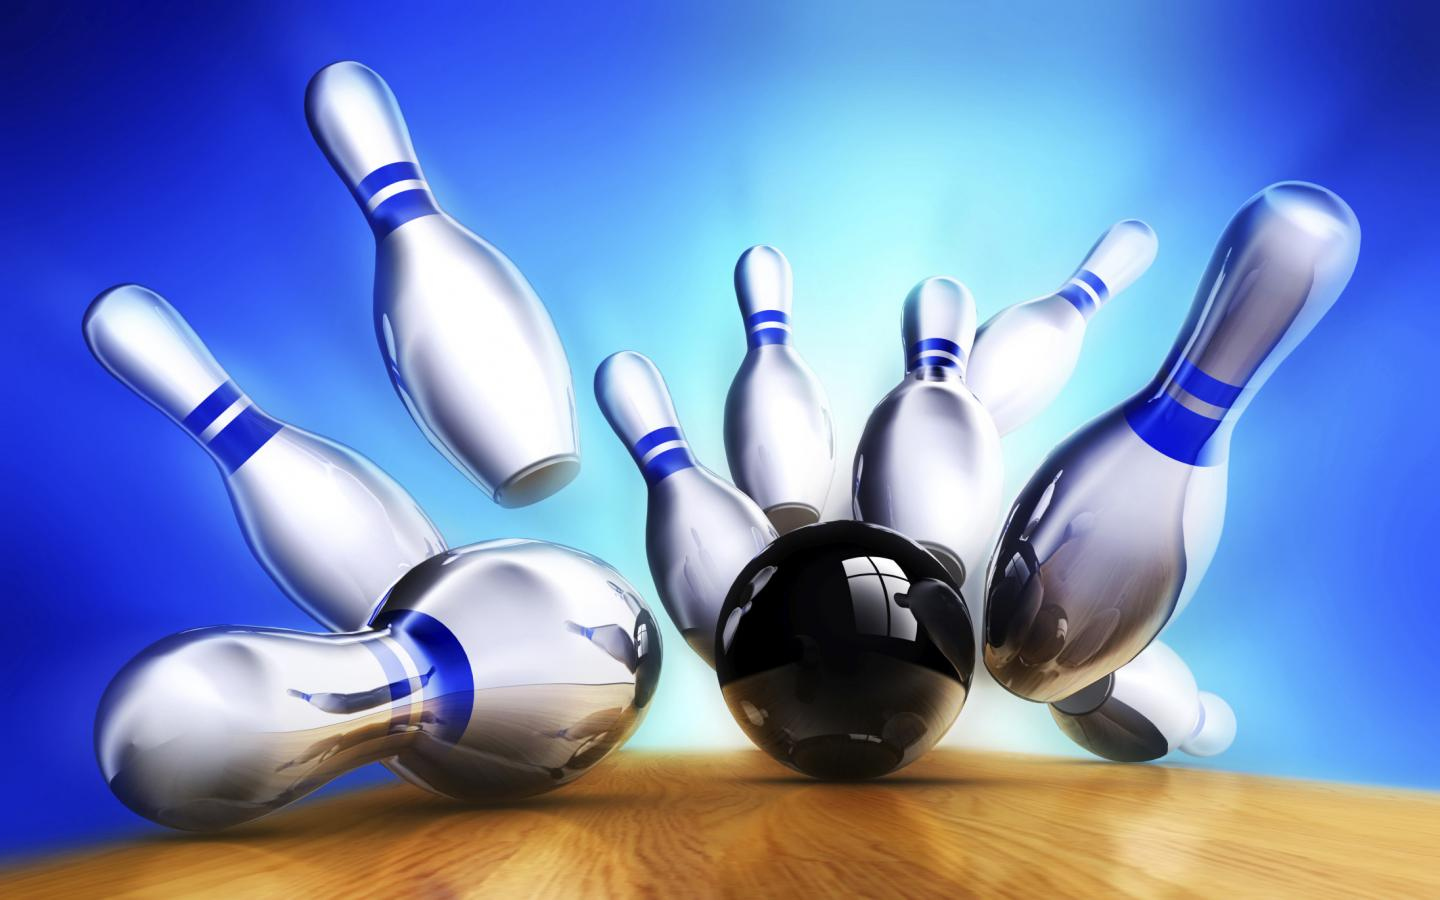 1440x900 - Bowling Wallpapers 25